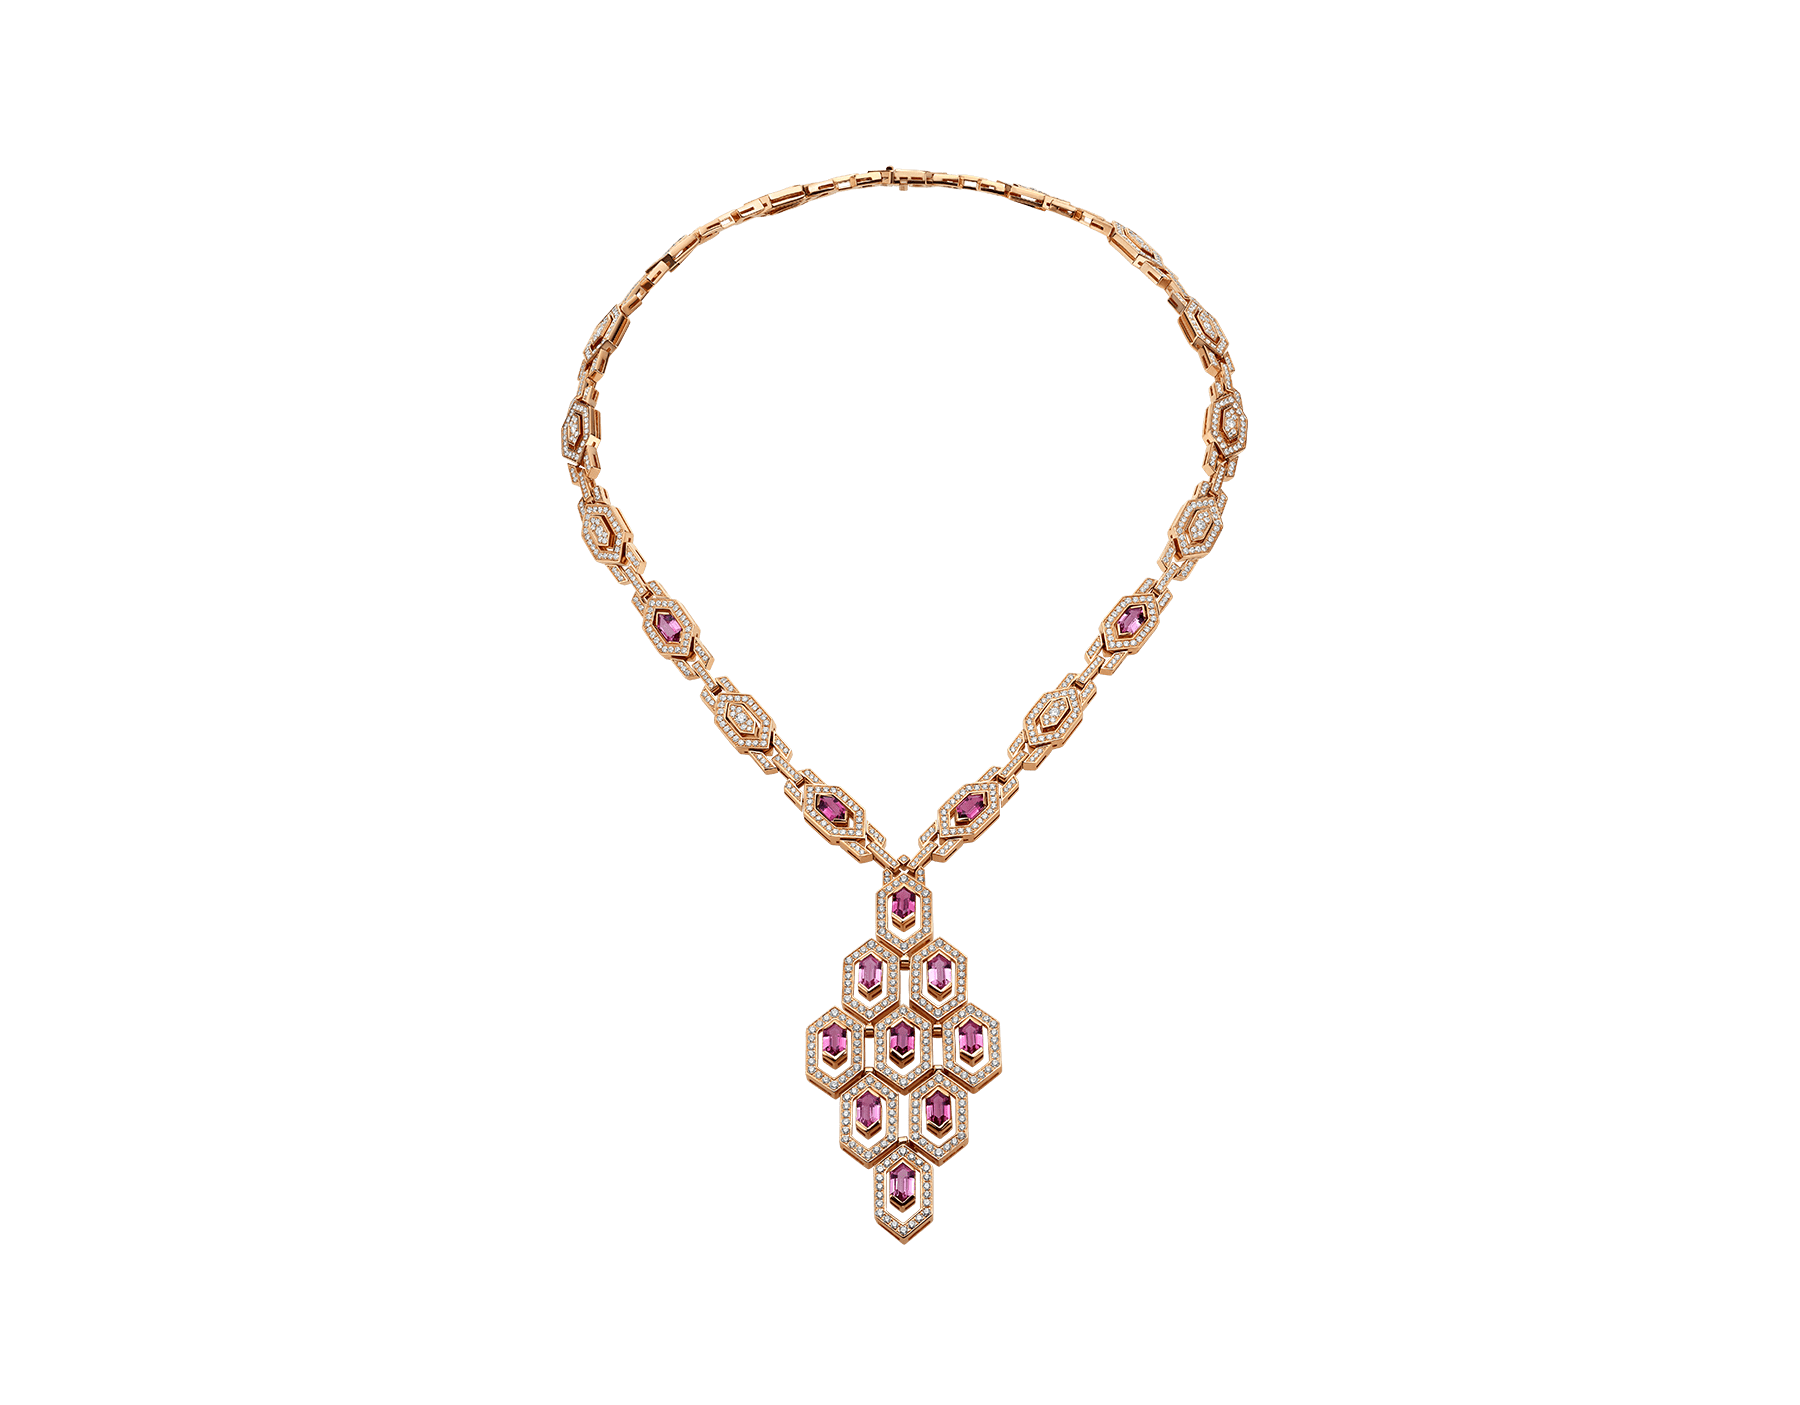 Serpenti Necklace in 18 kt pink gold with rubellite (5.25 ct) and pavè diamonds (7.37 ct) 353845 image 1